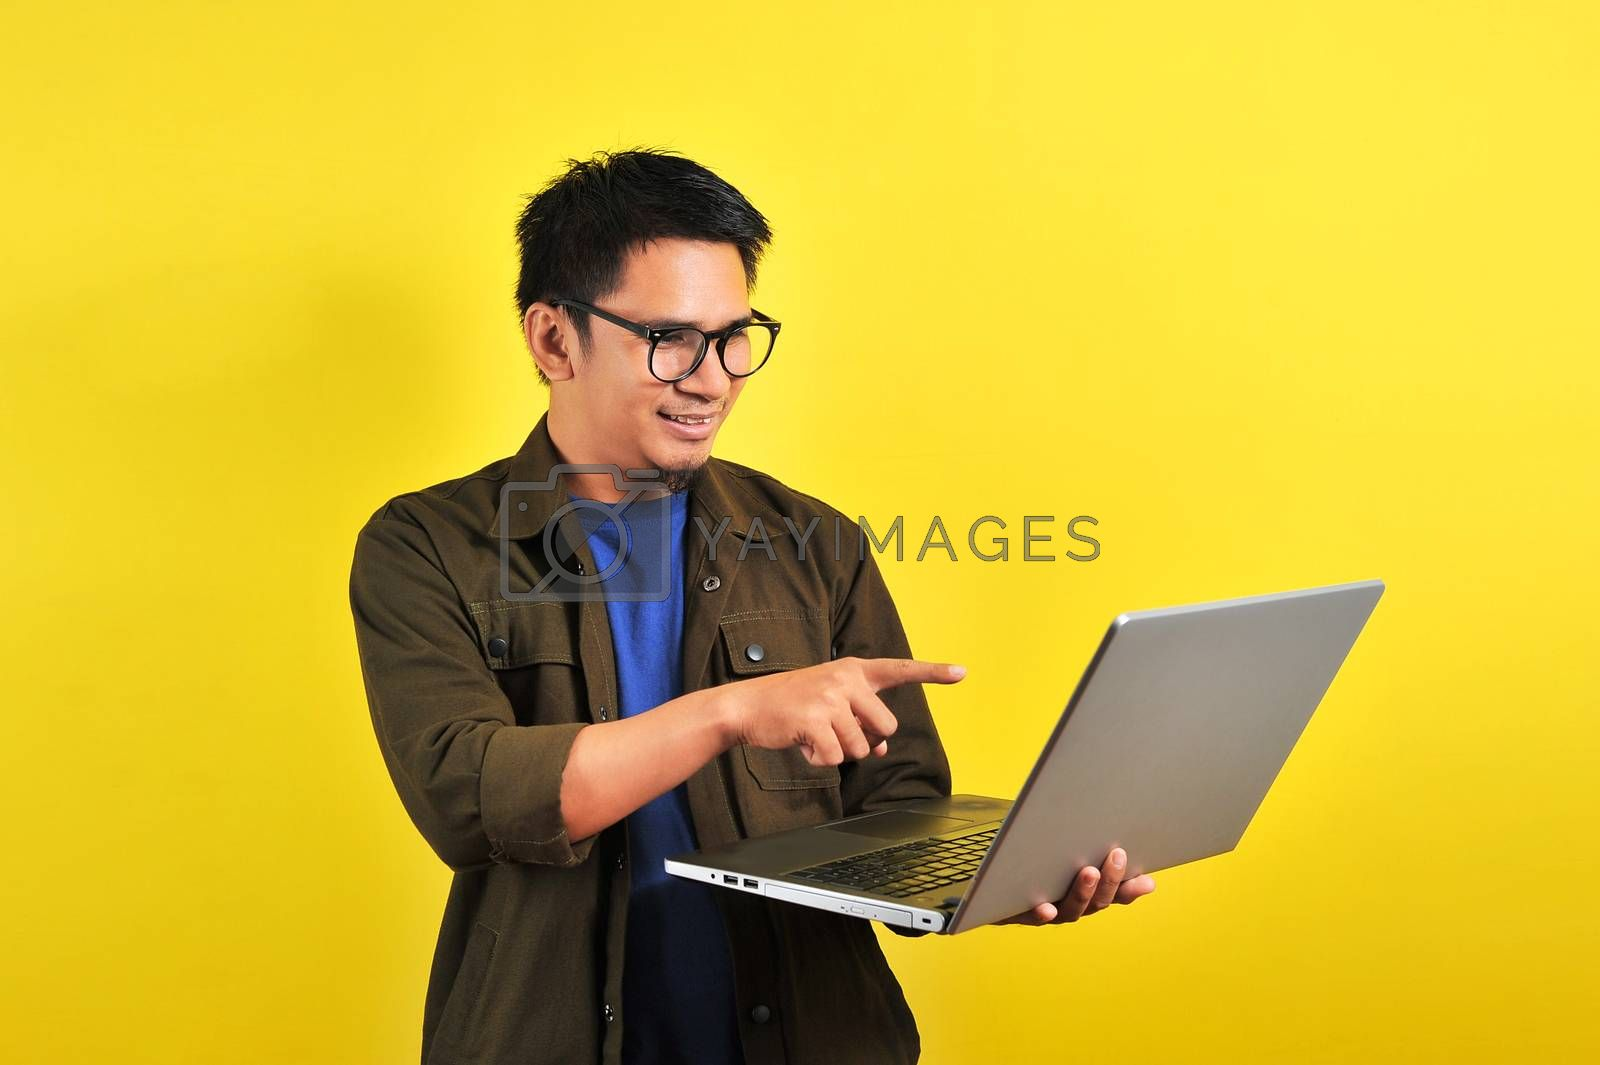 Royalty free image of Smiling pleased handsome asian young male entrepreneur by heruan1507